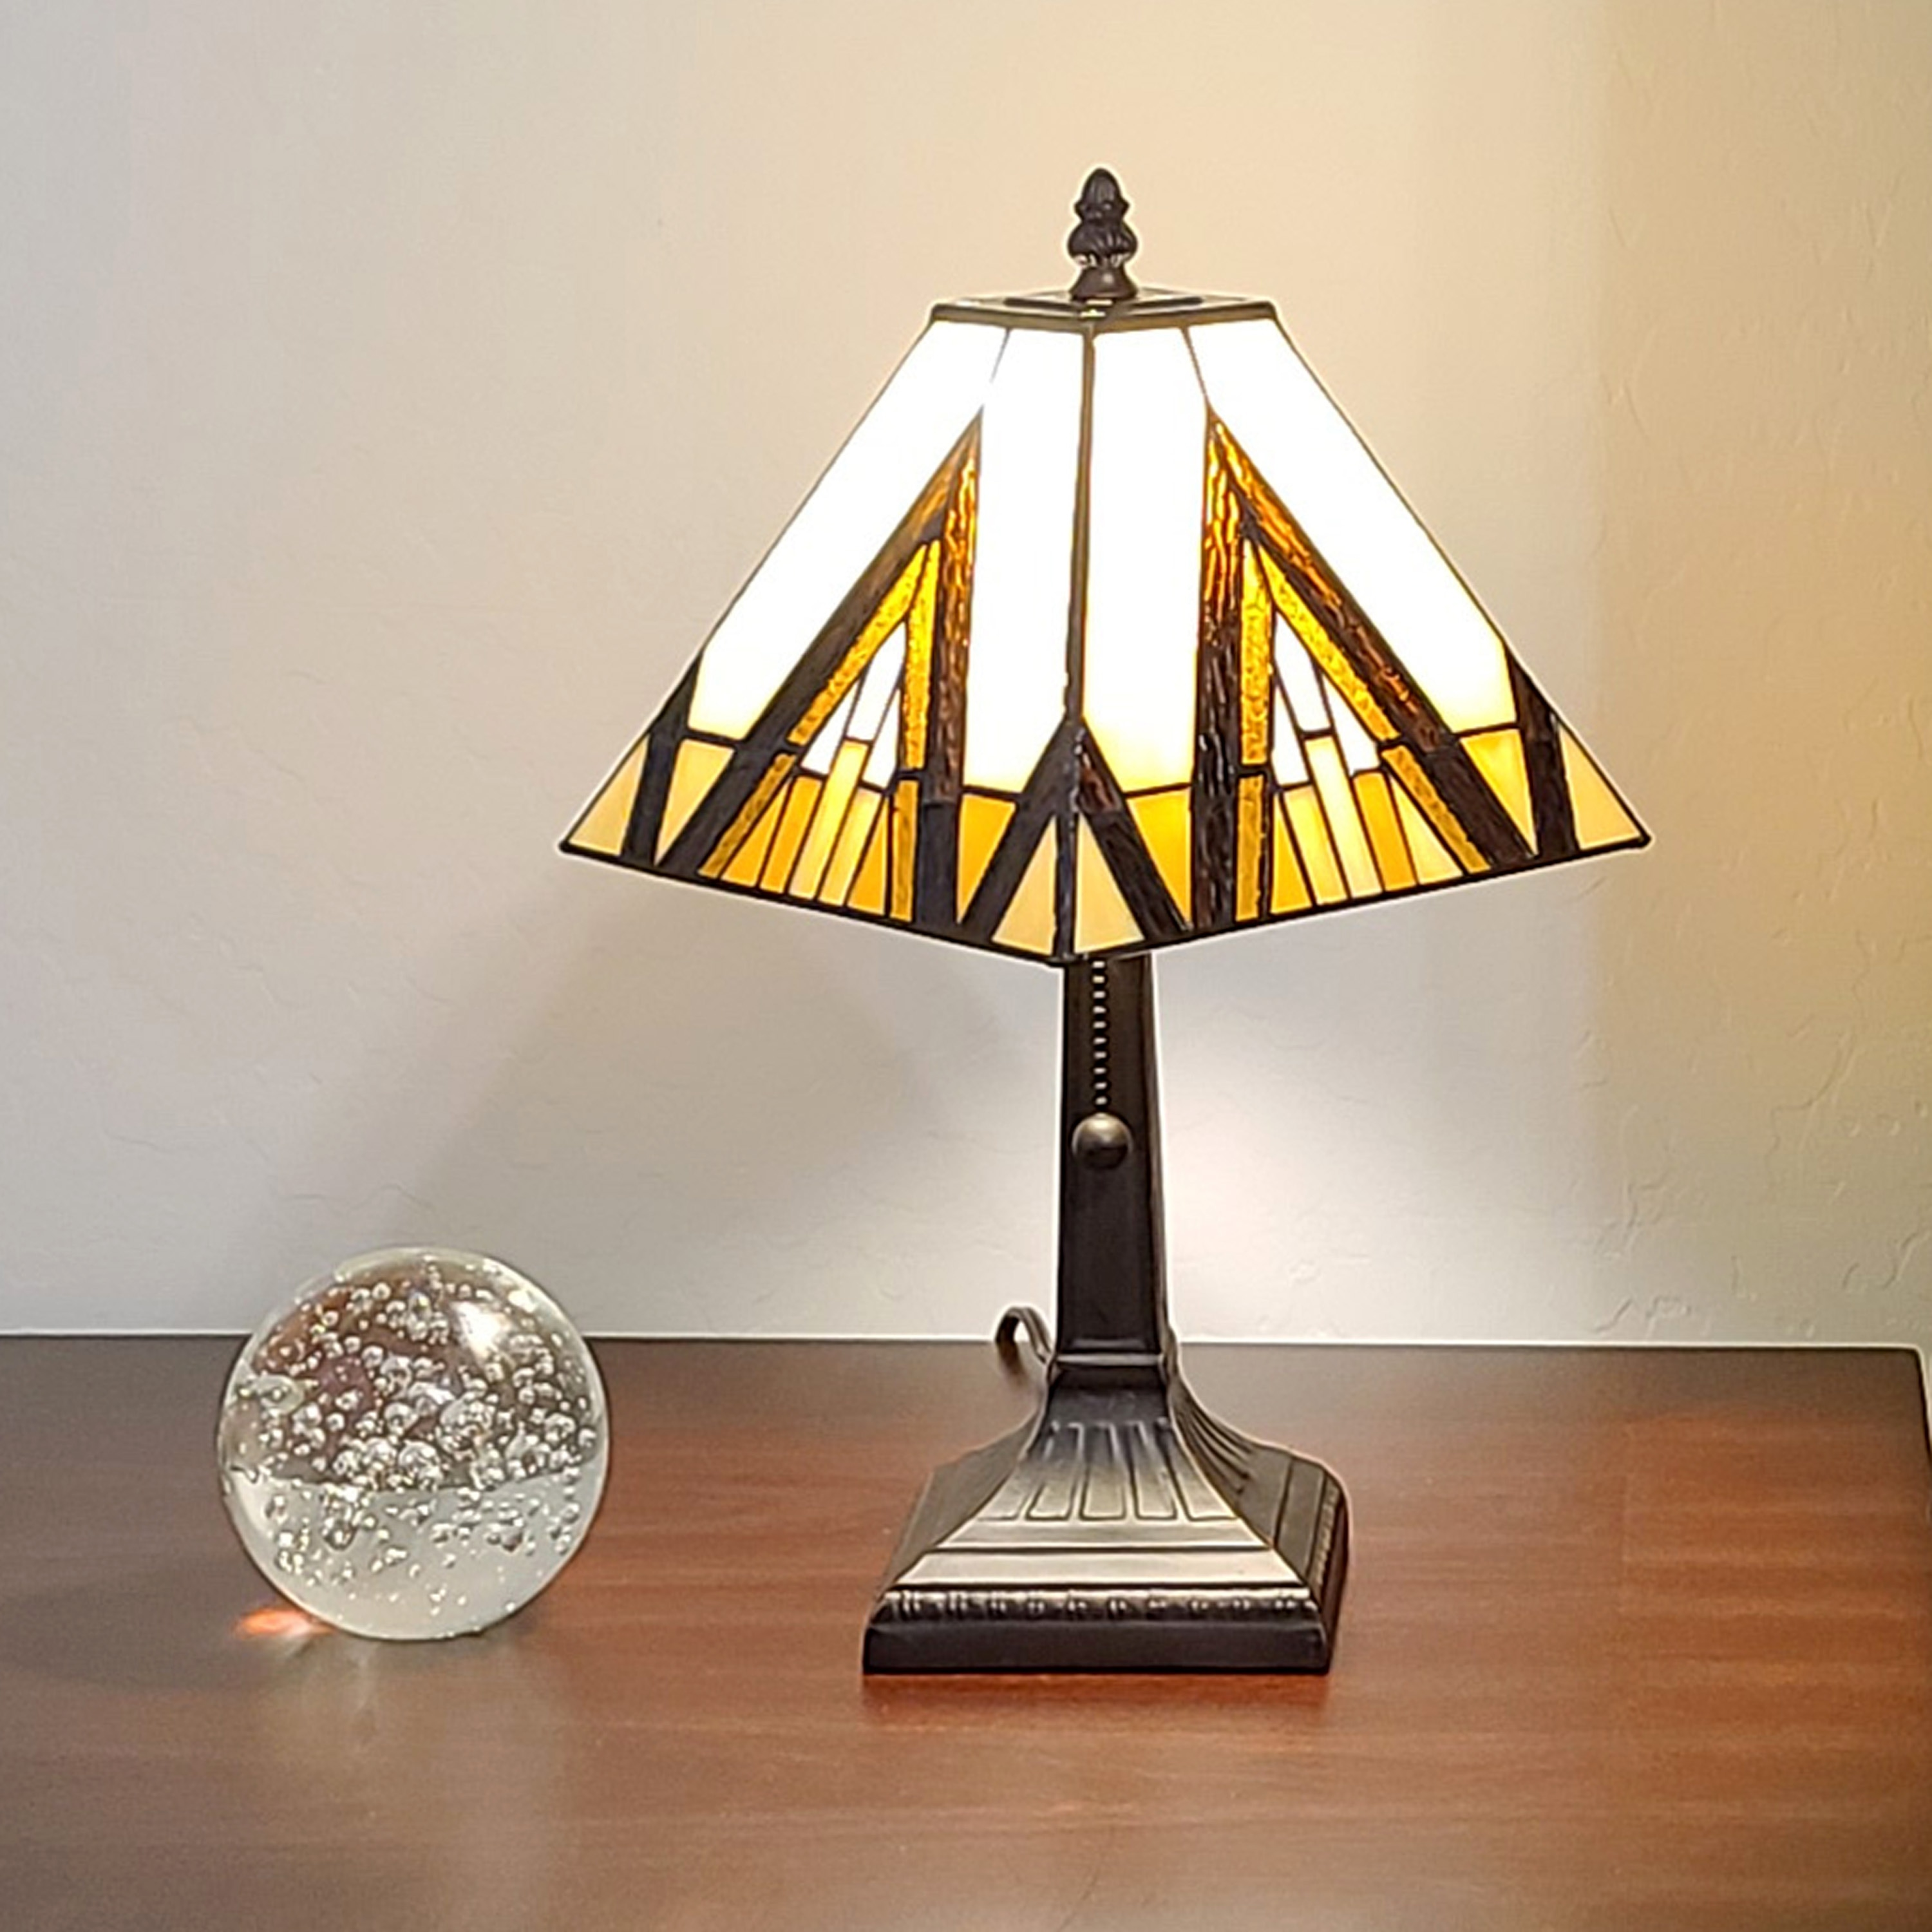 Shop Tiffany Style Table Lamp Ivory Brown 14 5 Tall Stained Glass Light Am364tl08 Amora Lighting Overstock 30634249